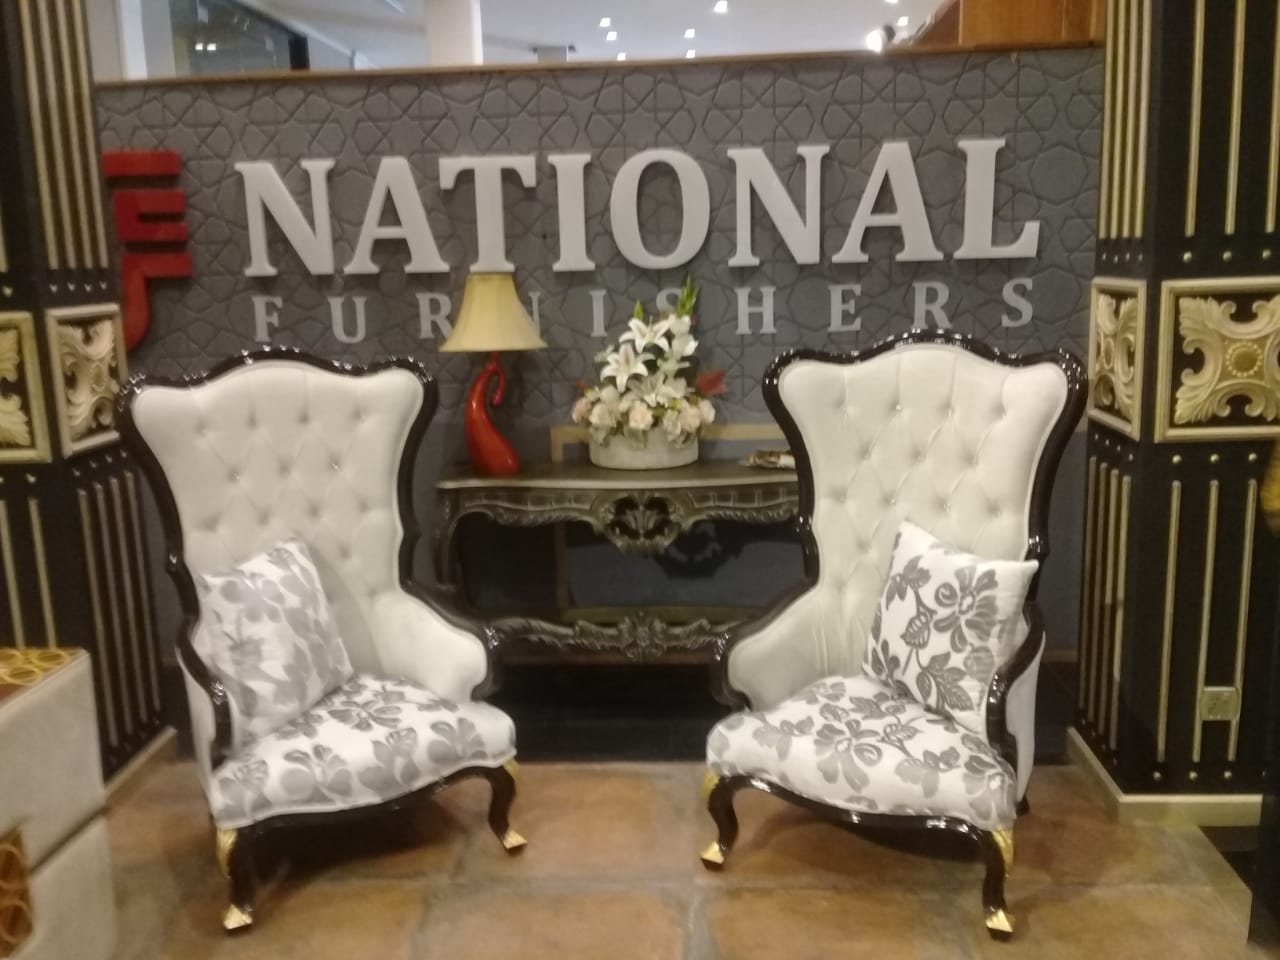 National Furnishers. (8 worker to successful business)  by